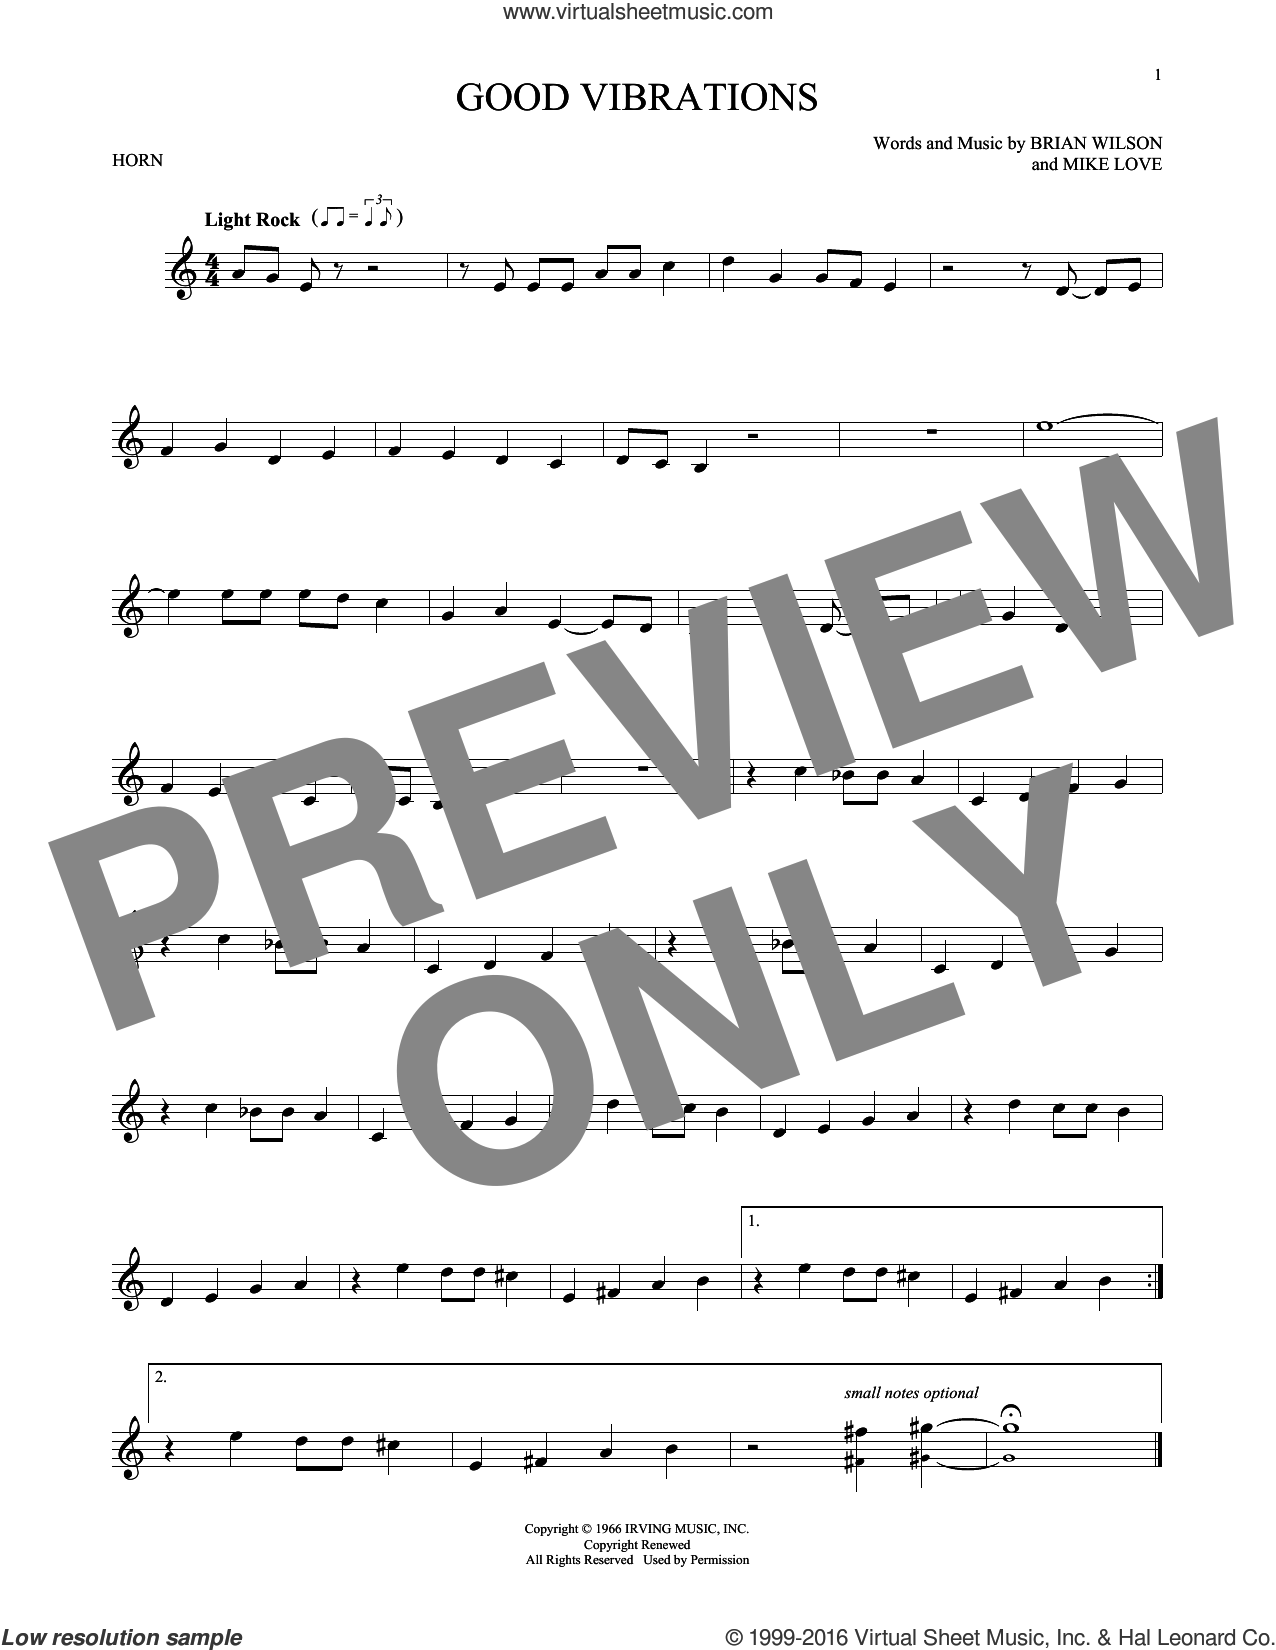 Good Vibrations sheet music for horn solo by The Beach Boys, Brian Wilson and Mike Love, intermediate skill level